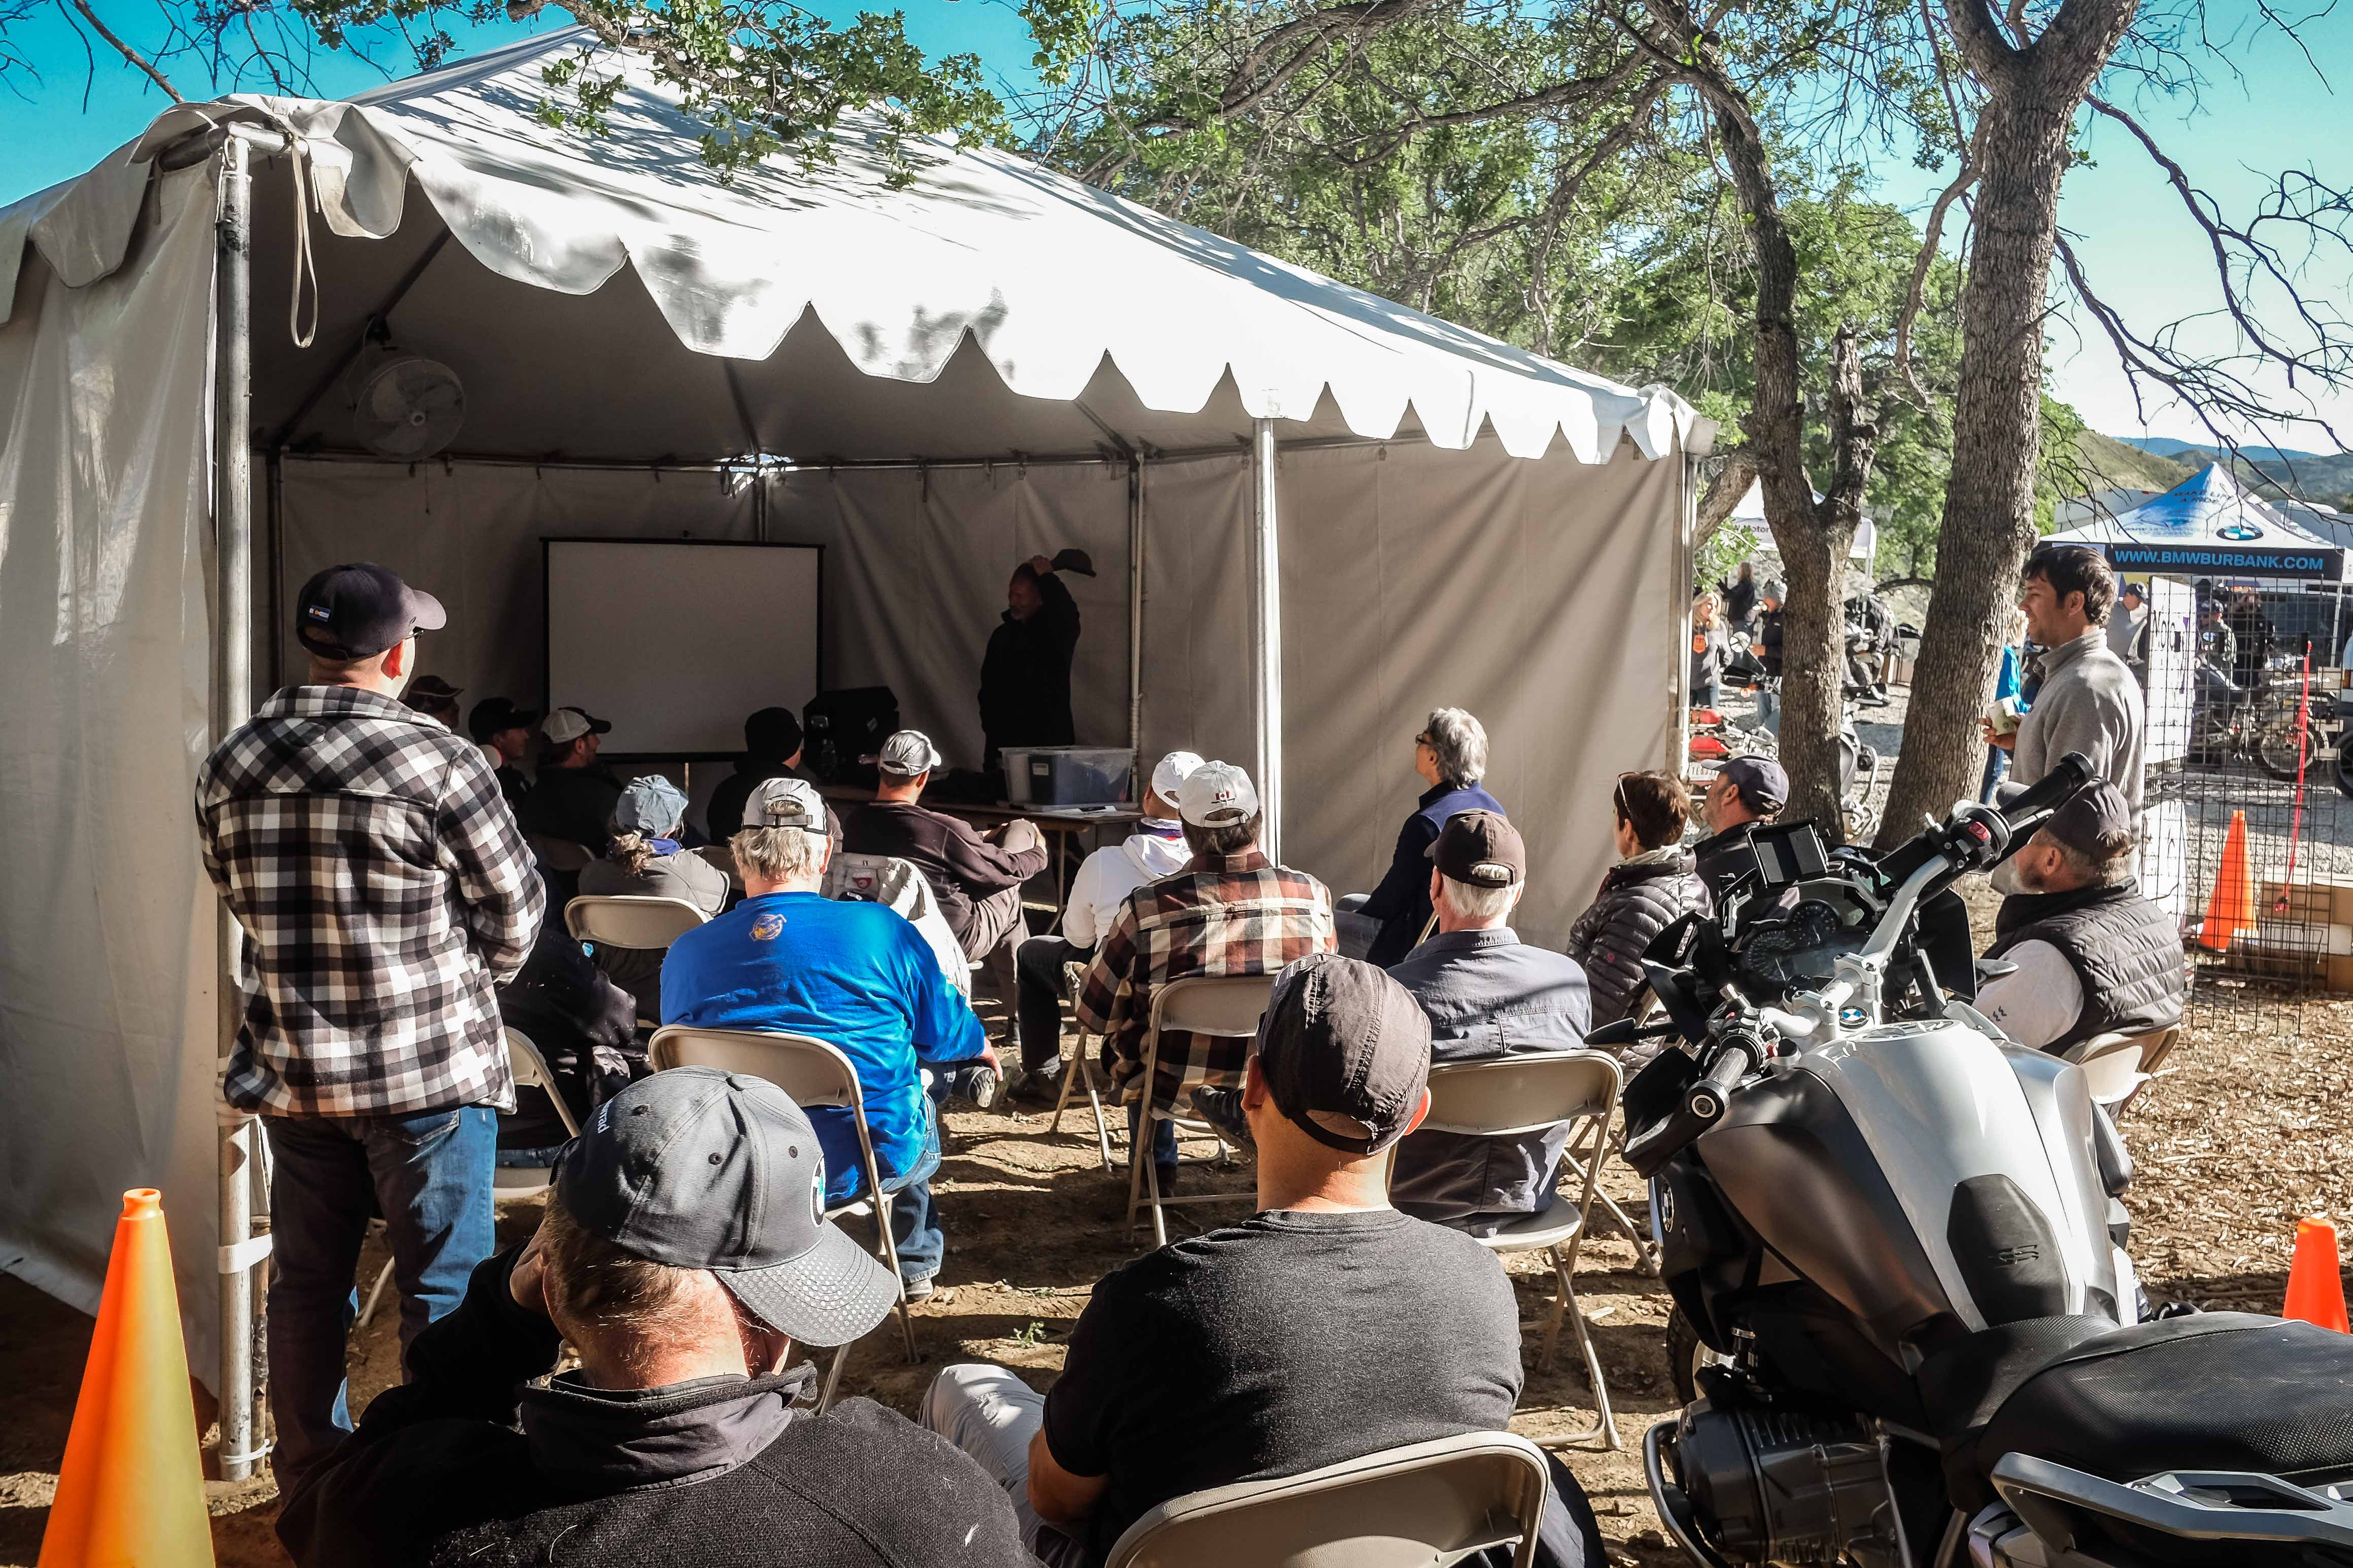 Classroom clinics are presented throughout the property. Here attendees are learning about the art of packing an adventure motorcycle for extended trips.